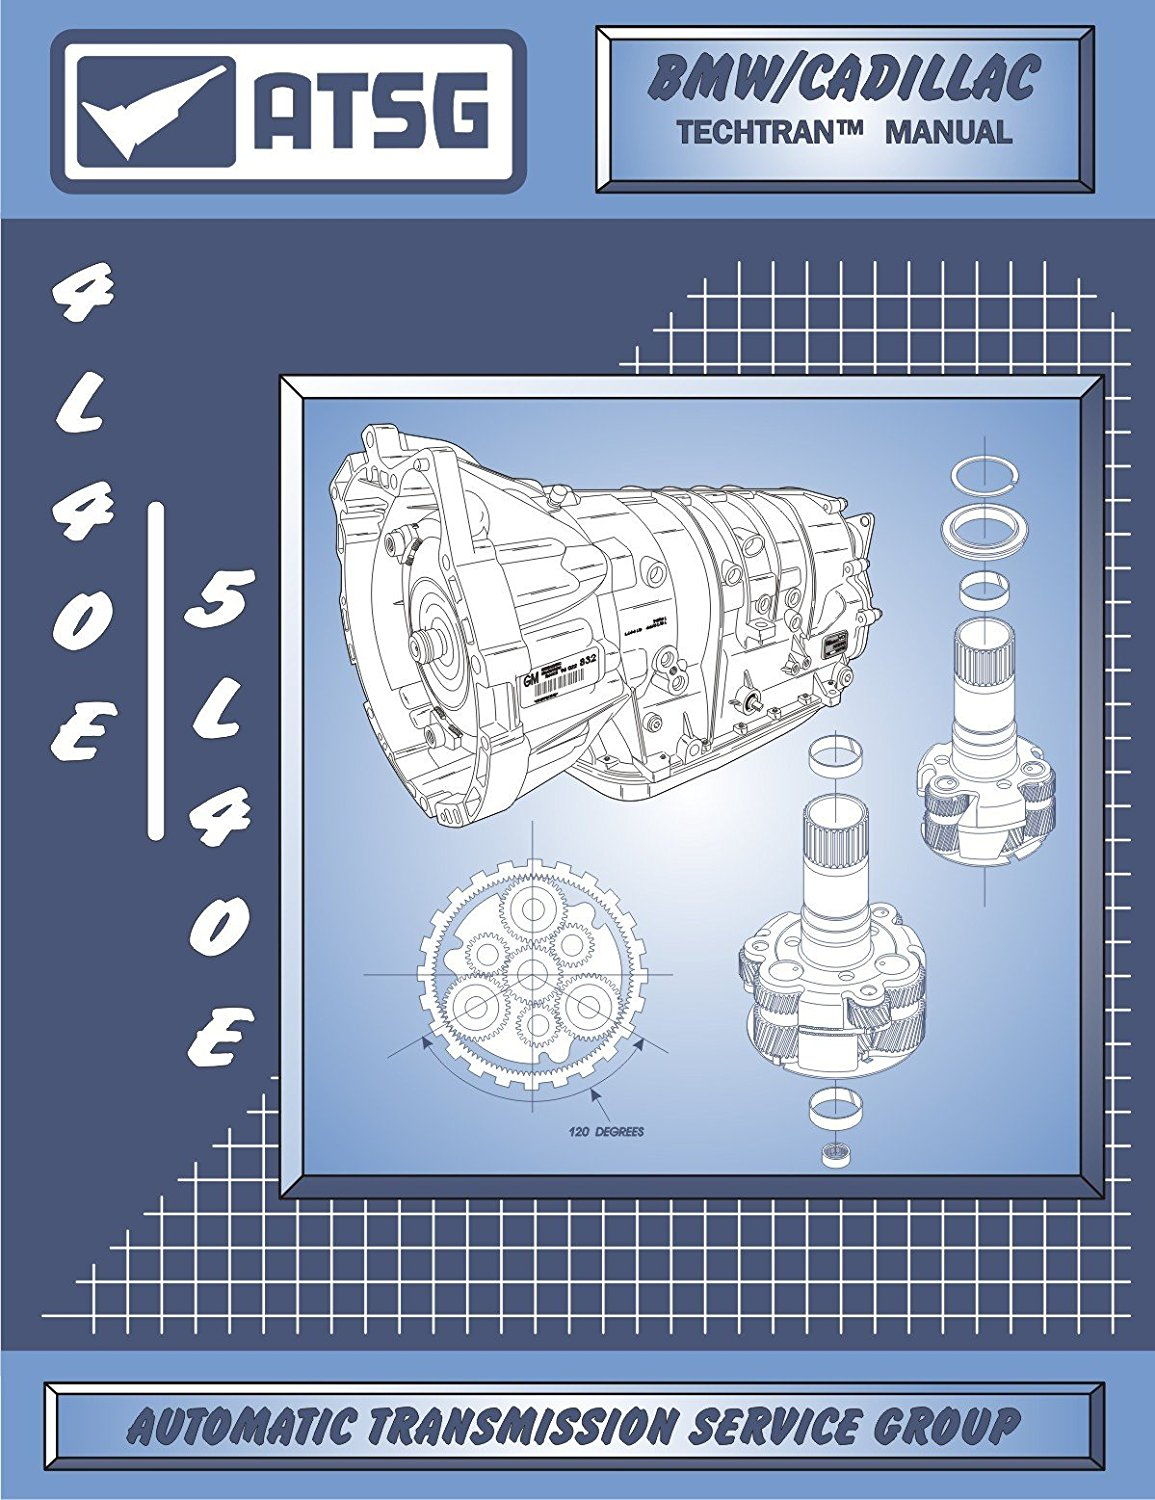 Bmw Transmission Parts Diagram Electrical Wiring Diagrams 5l40e Trusted U2022 96024845